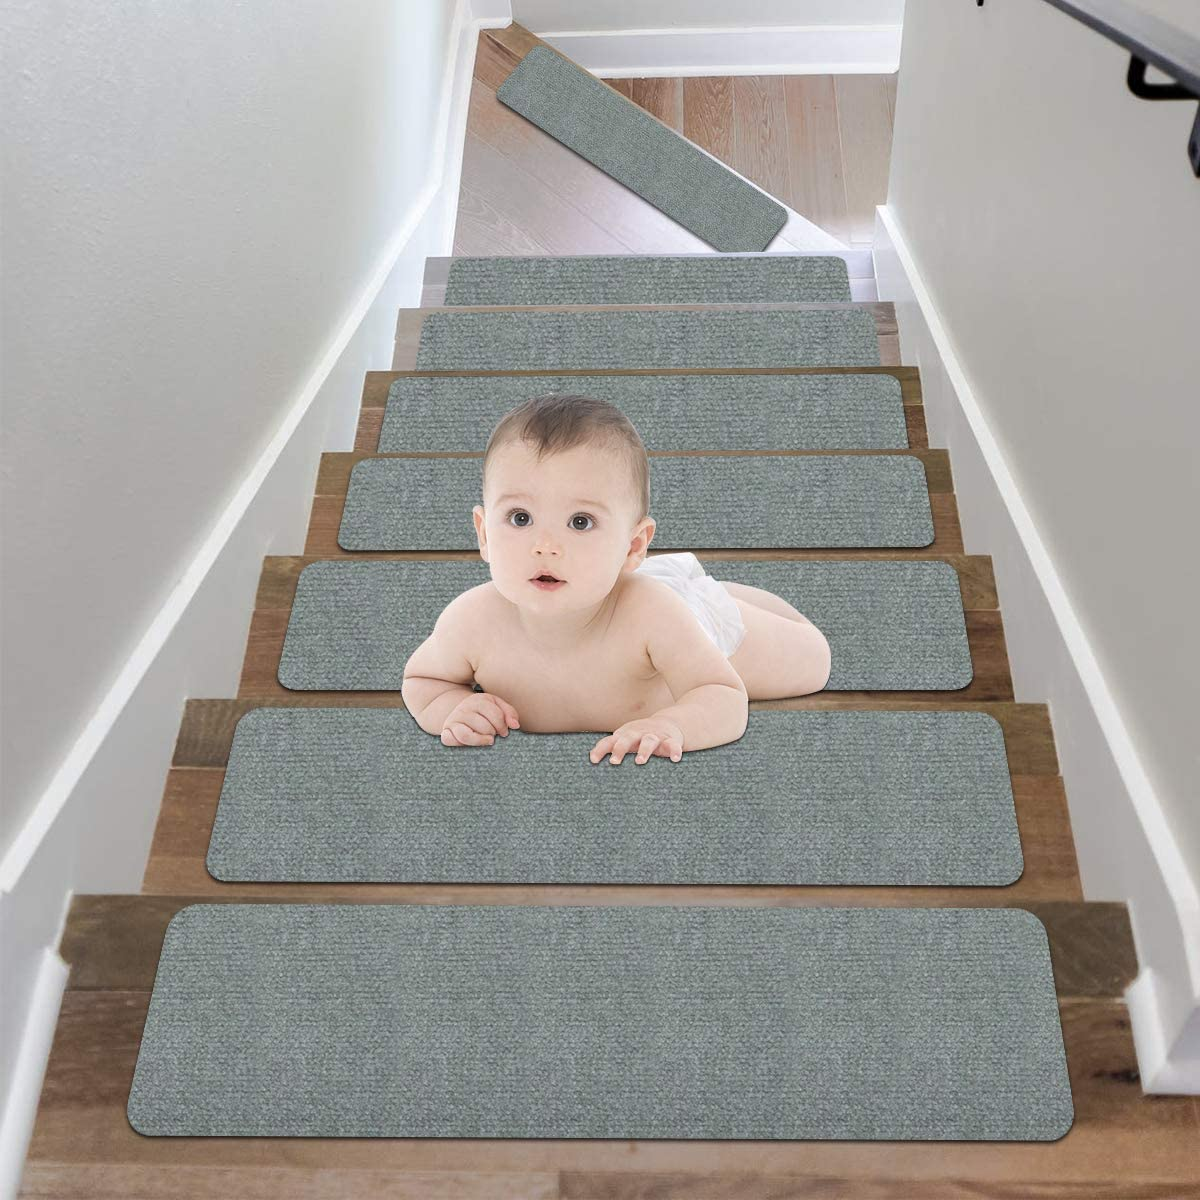 Butizone Non-Slip Carpet Stair Treads, Stair Rugs Runners Stair Covers Non-Skid Indoor with Reusable Adhesive, Safety for Kids, Elderly and Pets, 9'' x 26'', Light Grey, Set of 15